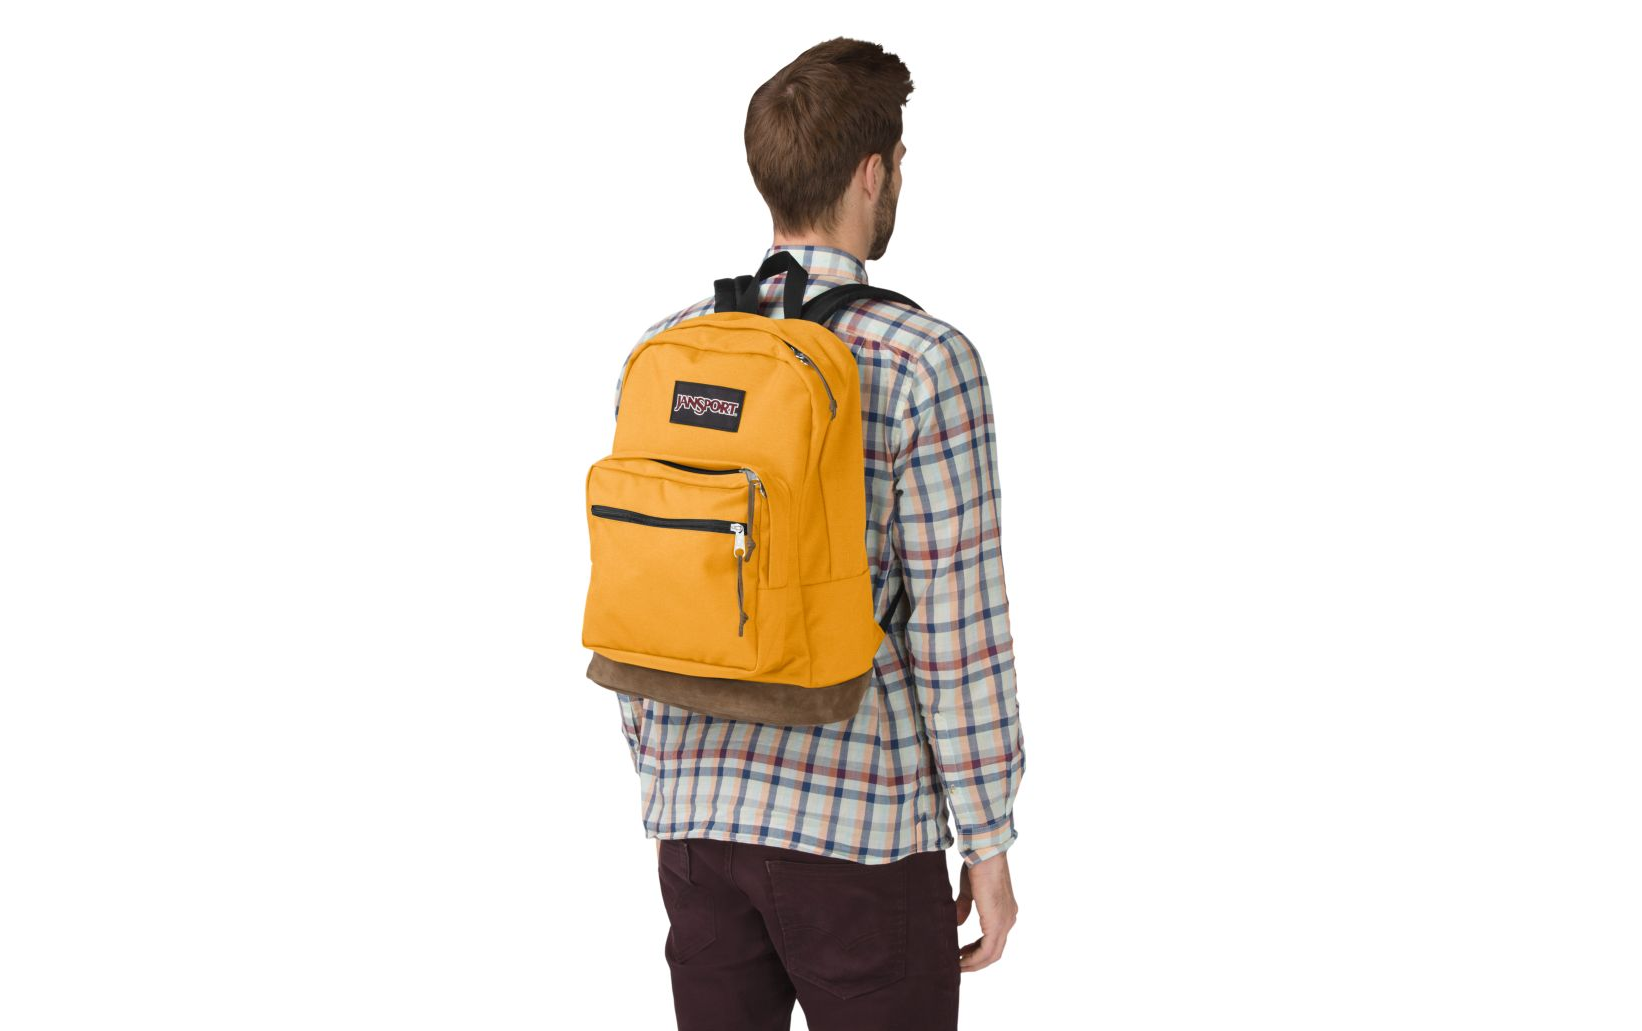 913b16590e JANSPORT RIGHT PACK BACKPACK, ENGLISH MUSTARD YELLOW (JS00TYP7)